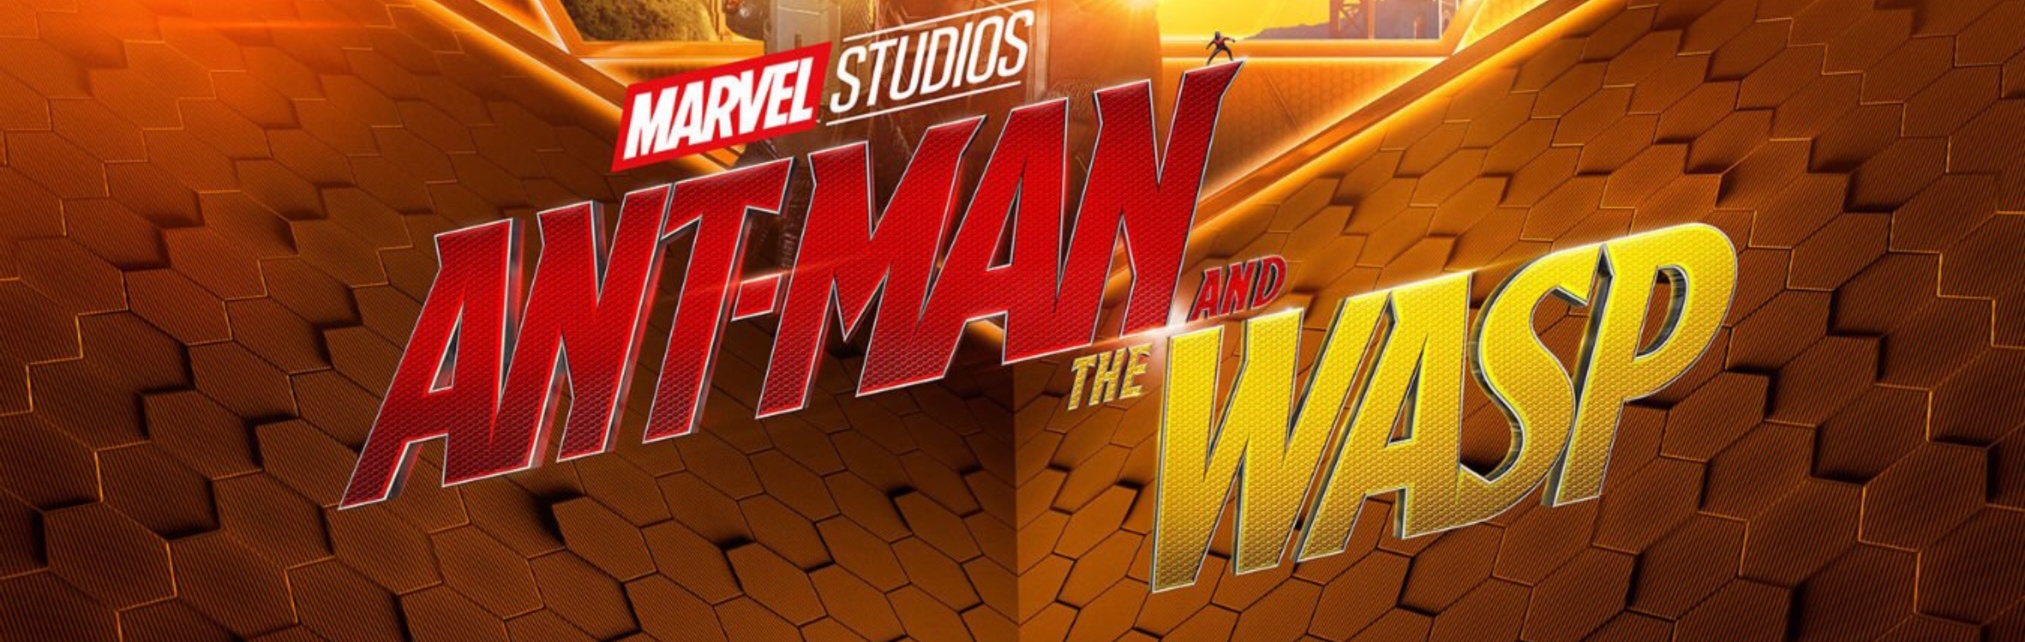 Ant-Man and the Wasp Recension GGG – (inkl video)